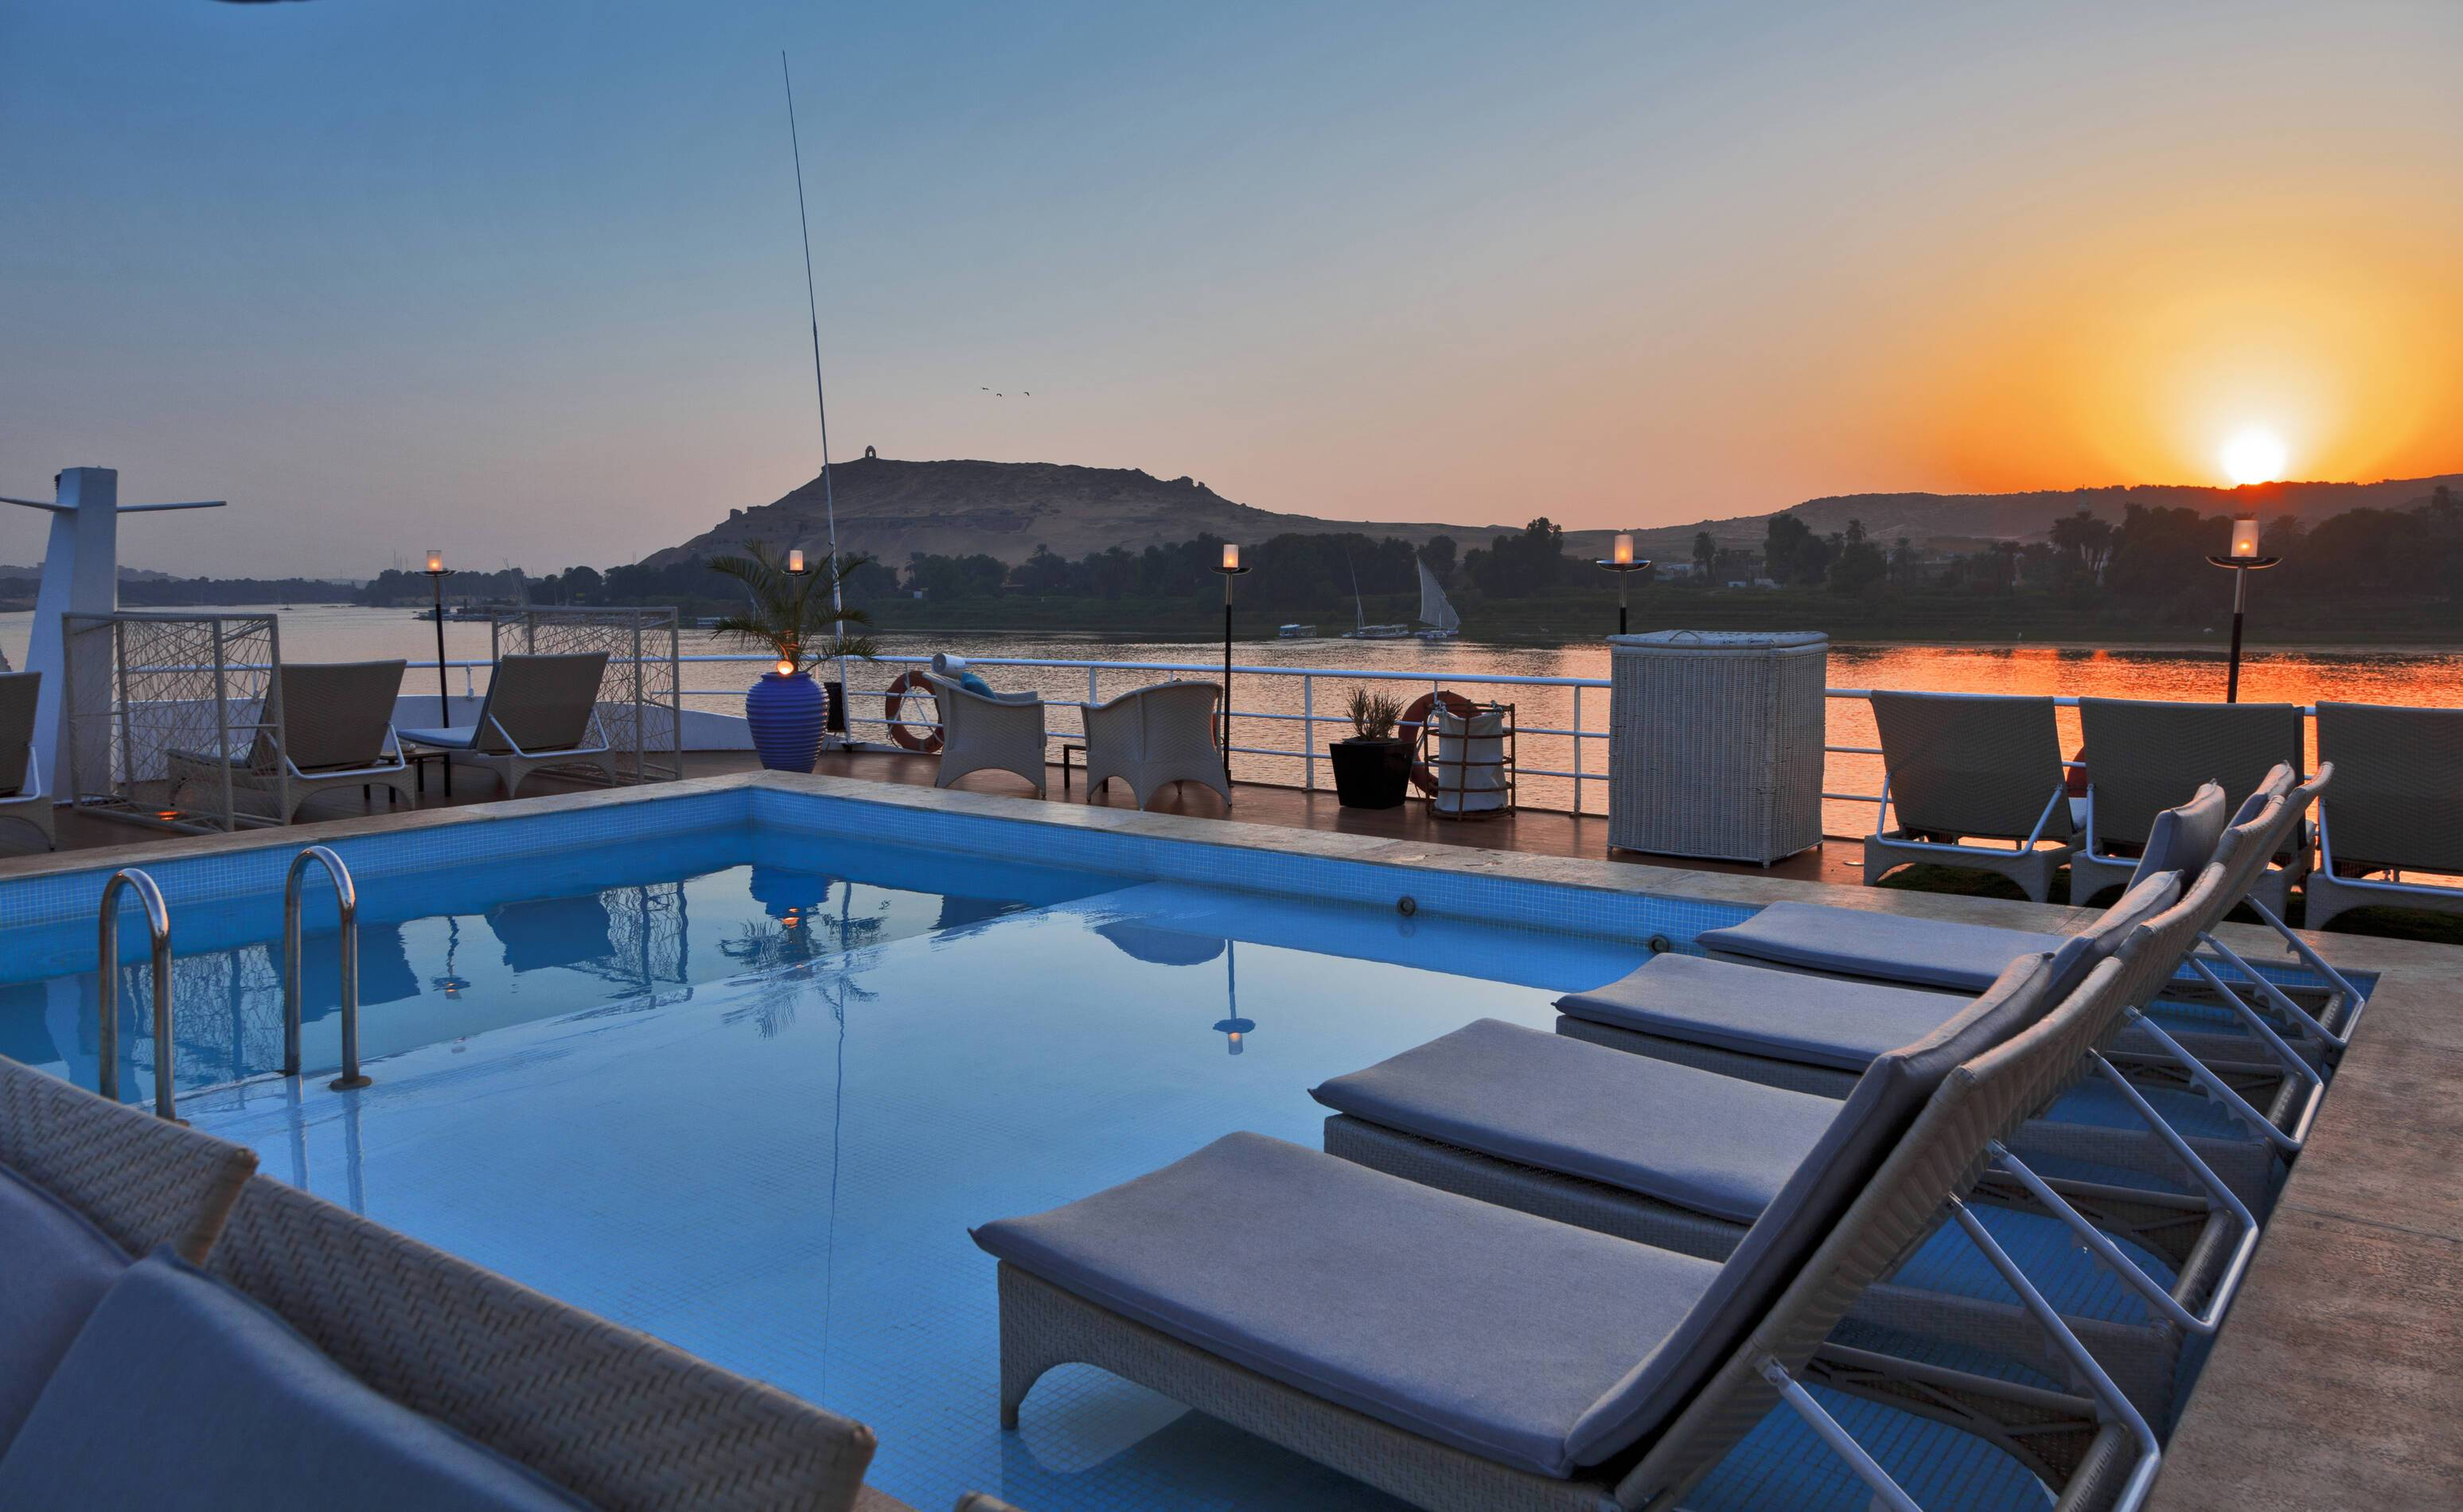 Croisiere Sun Boat IV piscine Circuit Egypte Sanctuary Retreats